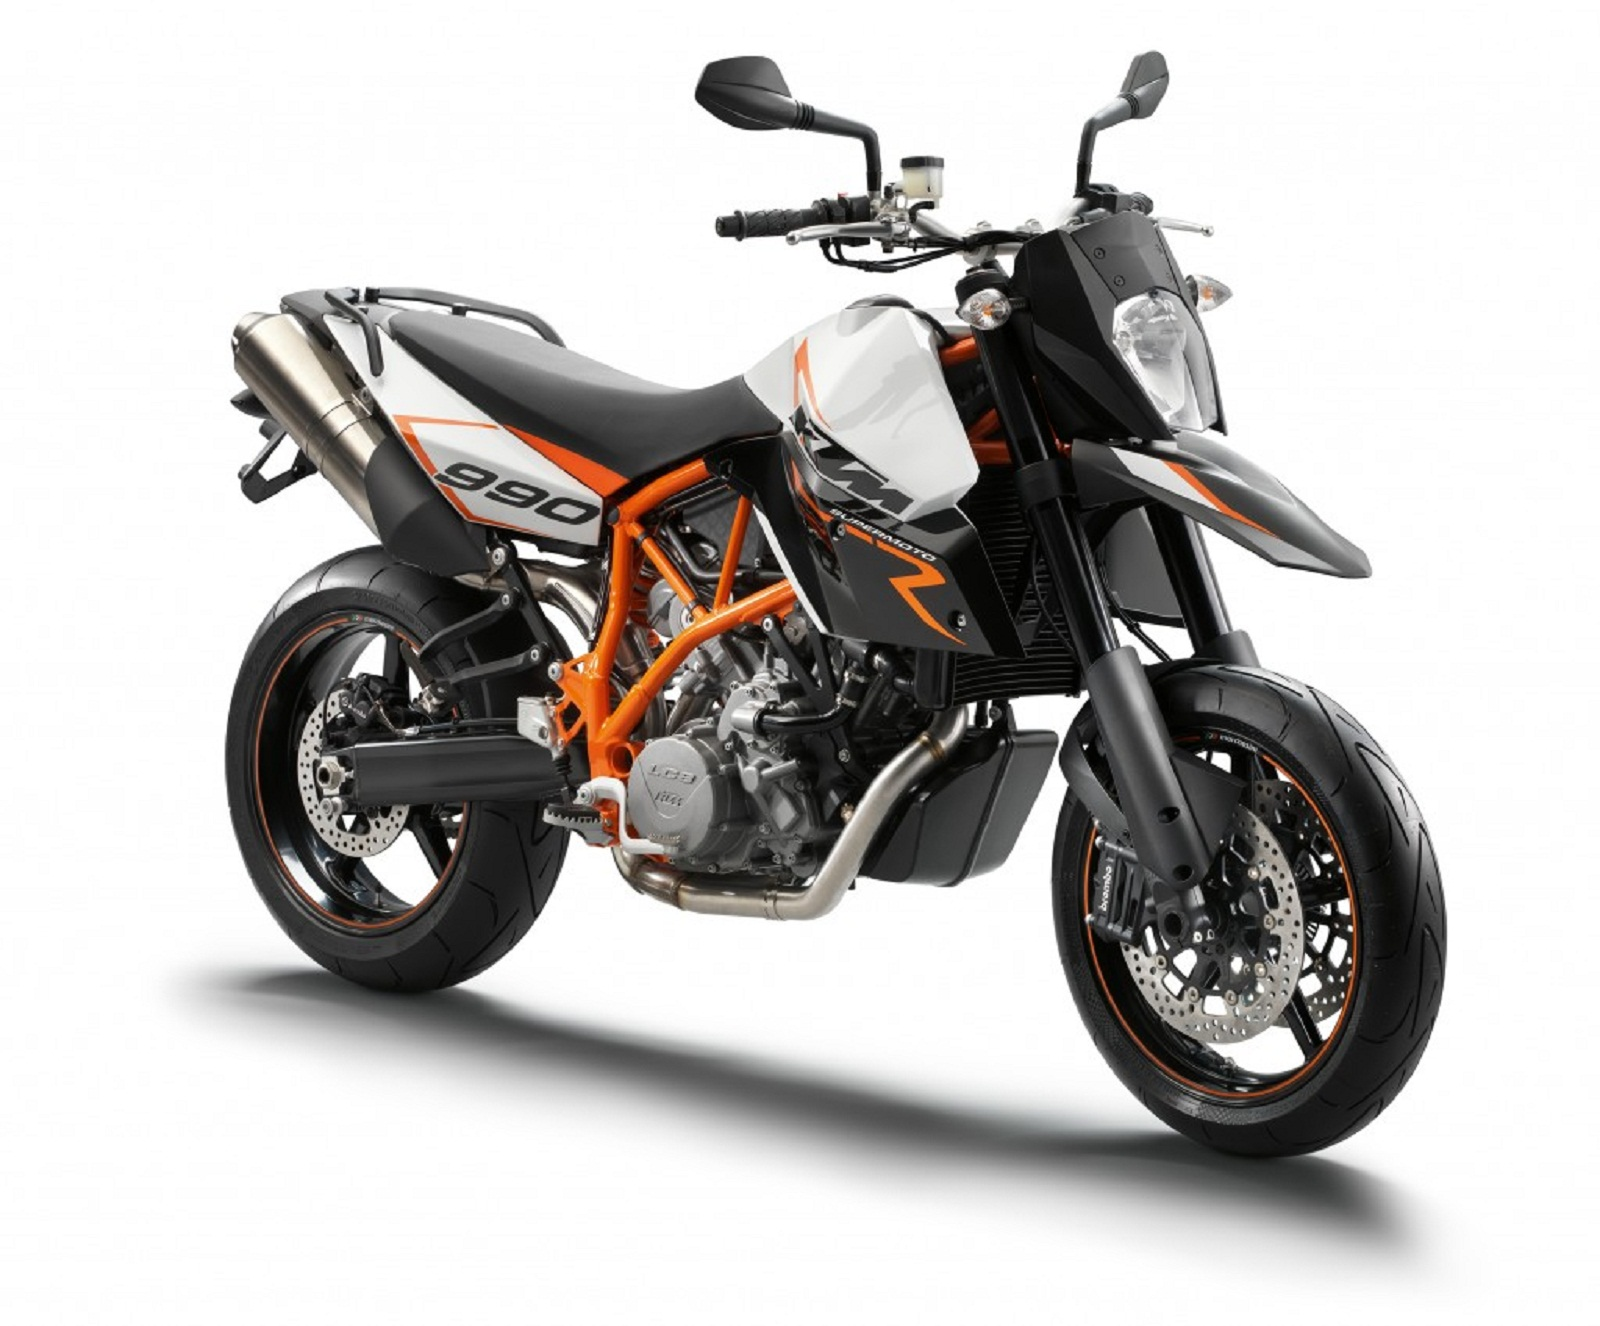 2012 KTM 990 SM R Review - Top Speed